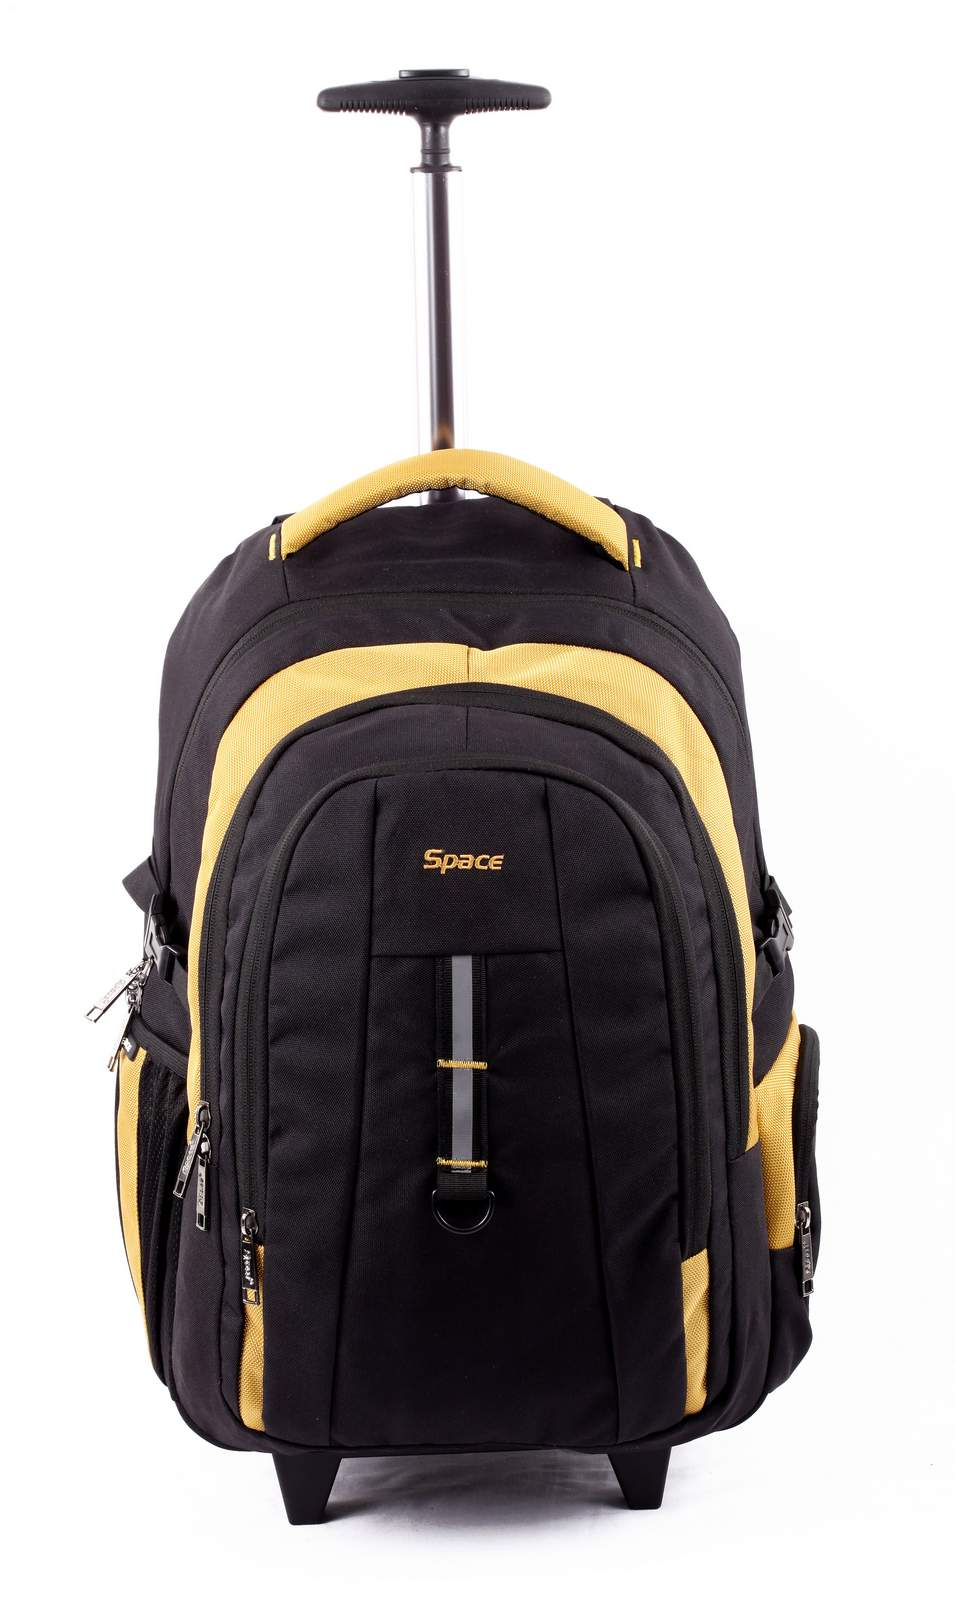 Space Laptop Backpack Roller Sunrise Trading Co Bangalore